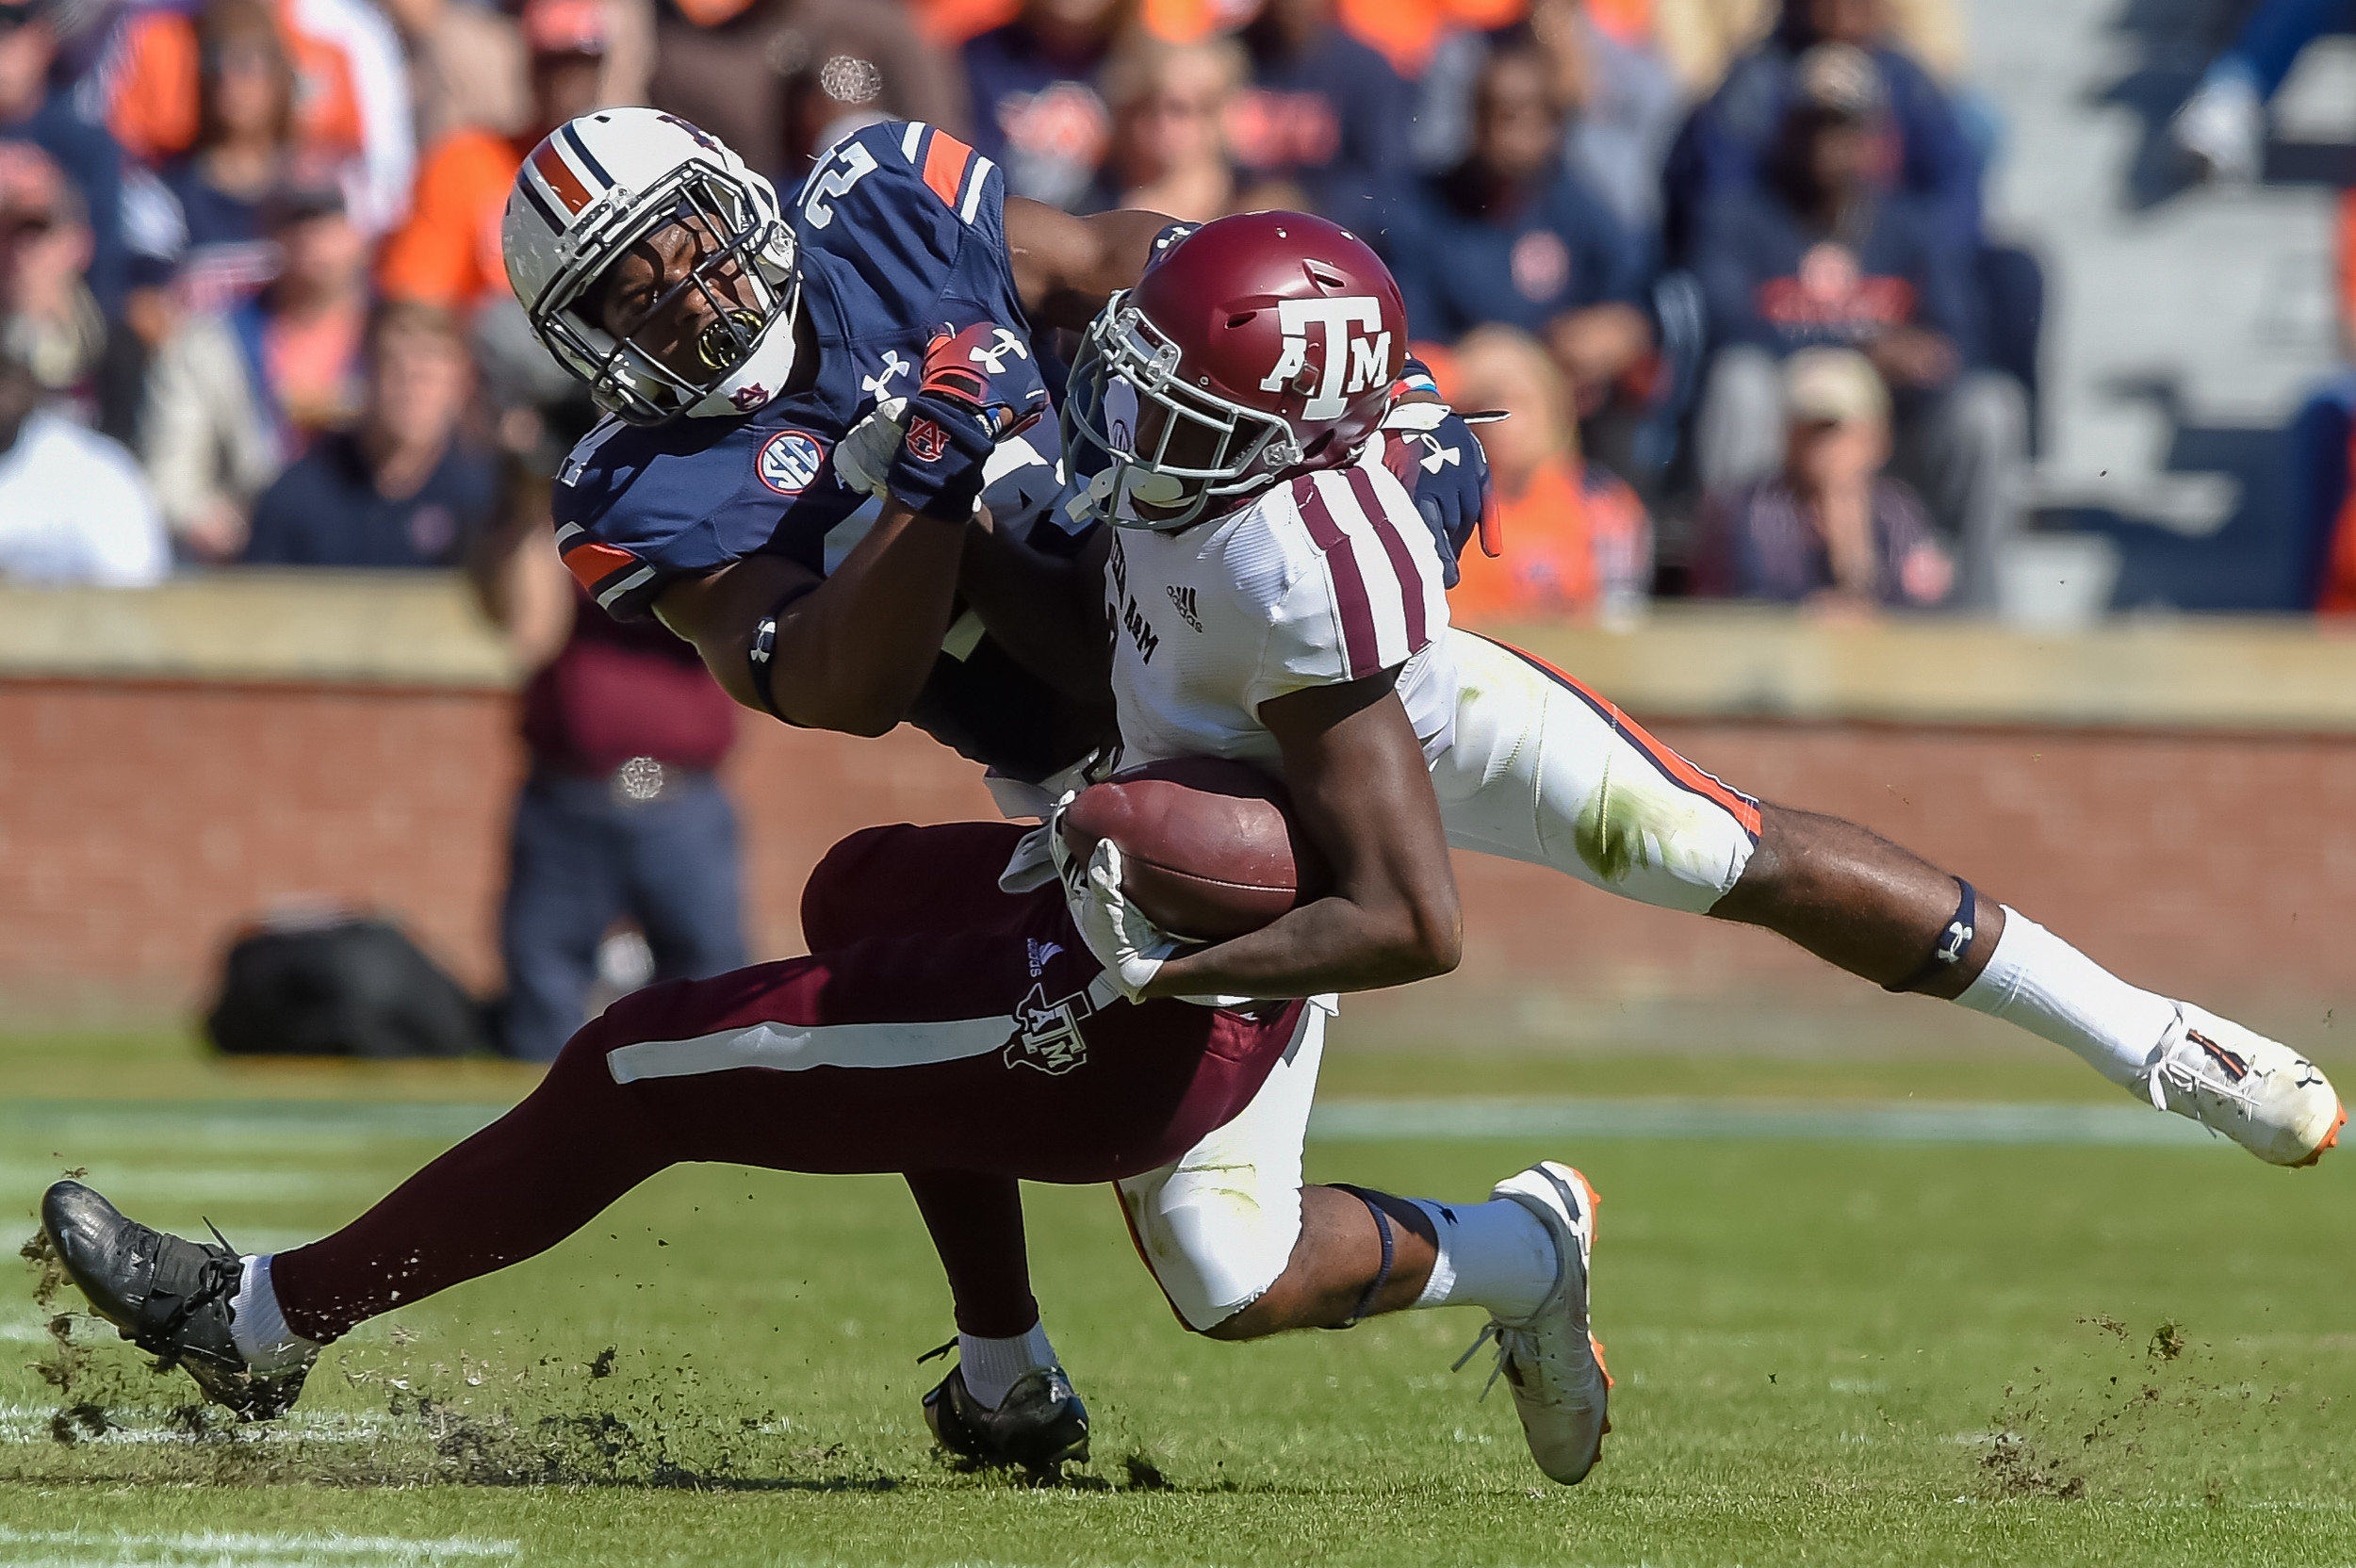 Auburn Tigers defensive back Daniel Thomas (24) tackles Texas A&M Aggies wide receiver Quartney Davis (1) during the first half of an NCAA football game against the Texas A&M Aggies Saturday, November 3, 2018, at Jordan-Hare Stadium in Auburn, Ala. (Photo by Jeff Johnsey)